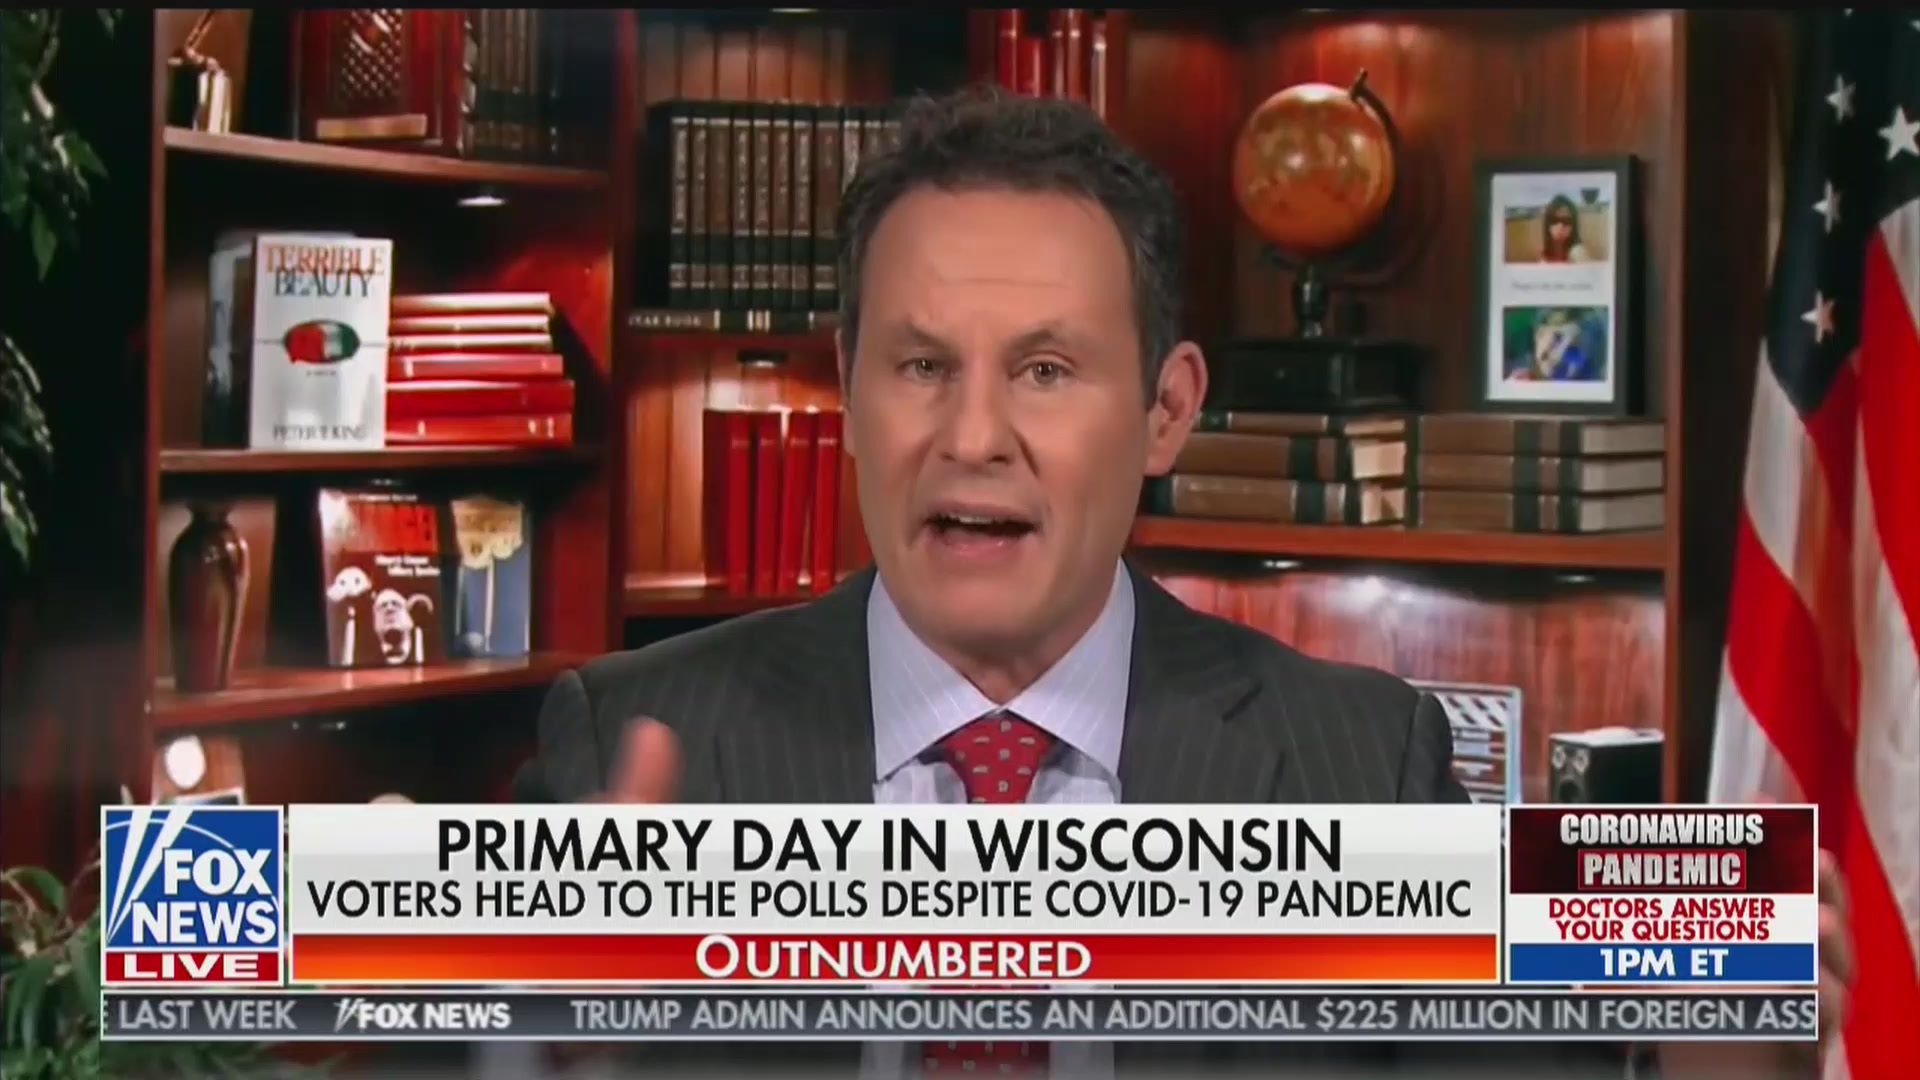 Fox News' Brian Kilmeade Salutes Wisconsin for Going Forward With In-Person Voting During Pandemic